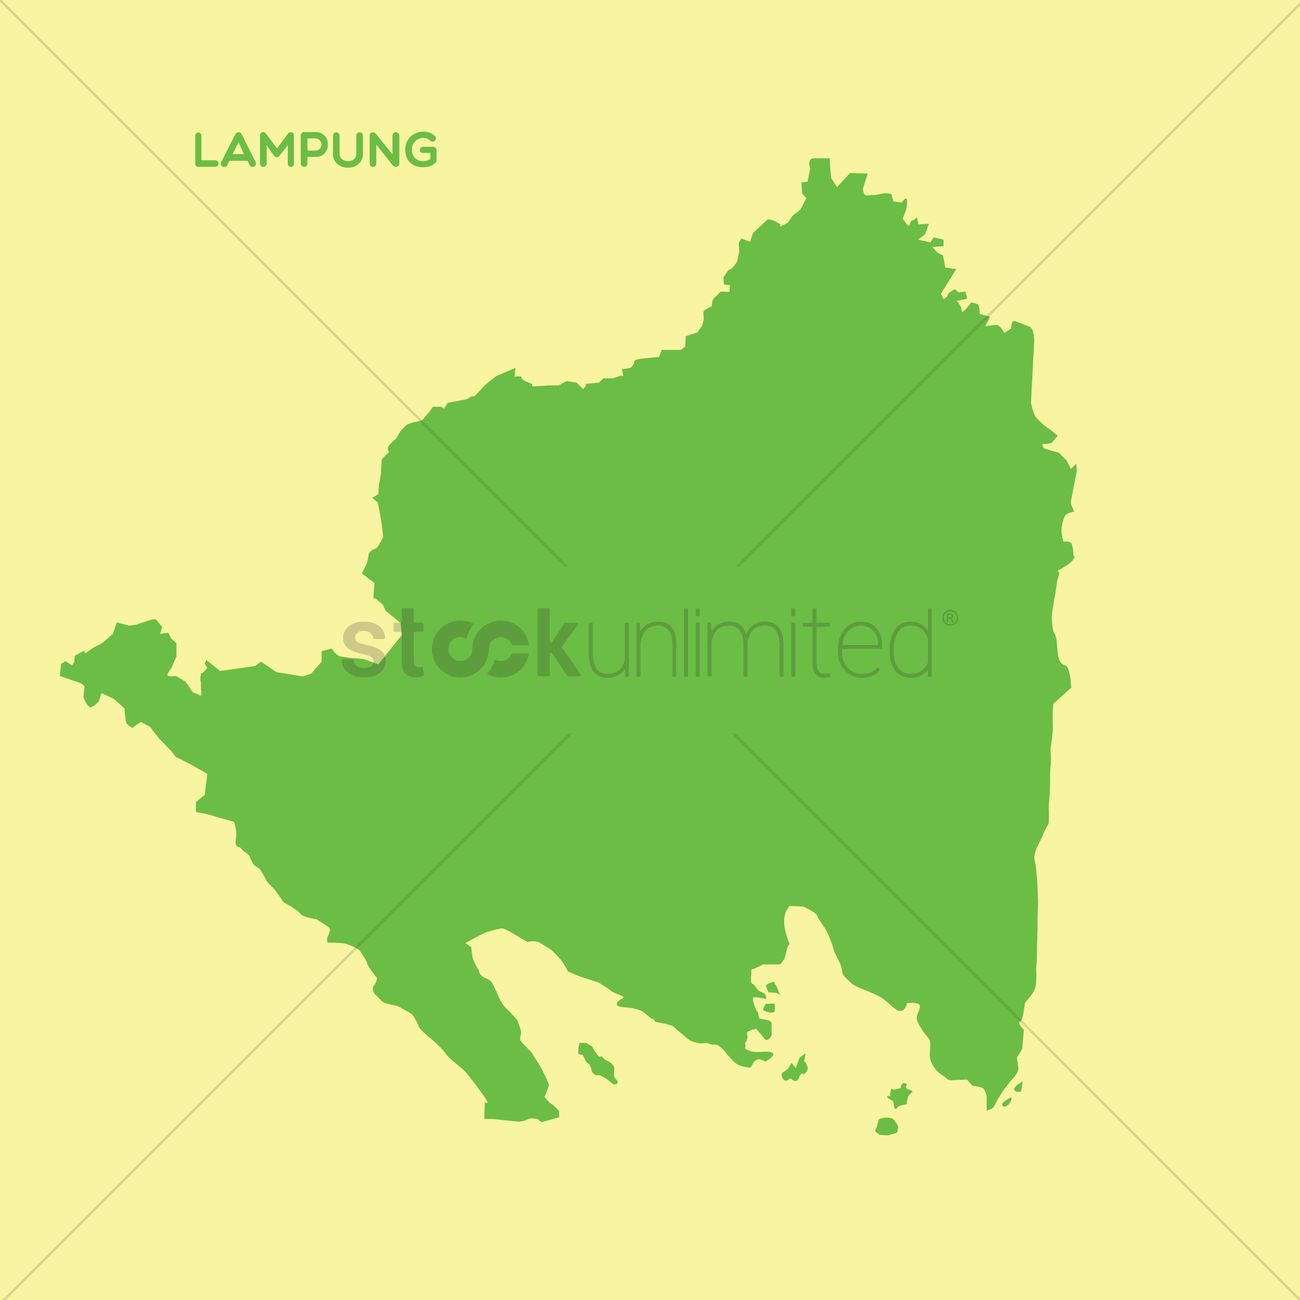 Map of lampung Vector Image 1480407 StockUnlimited